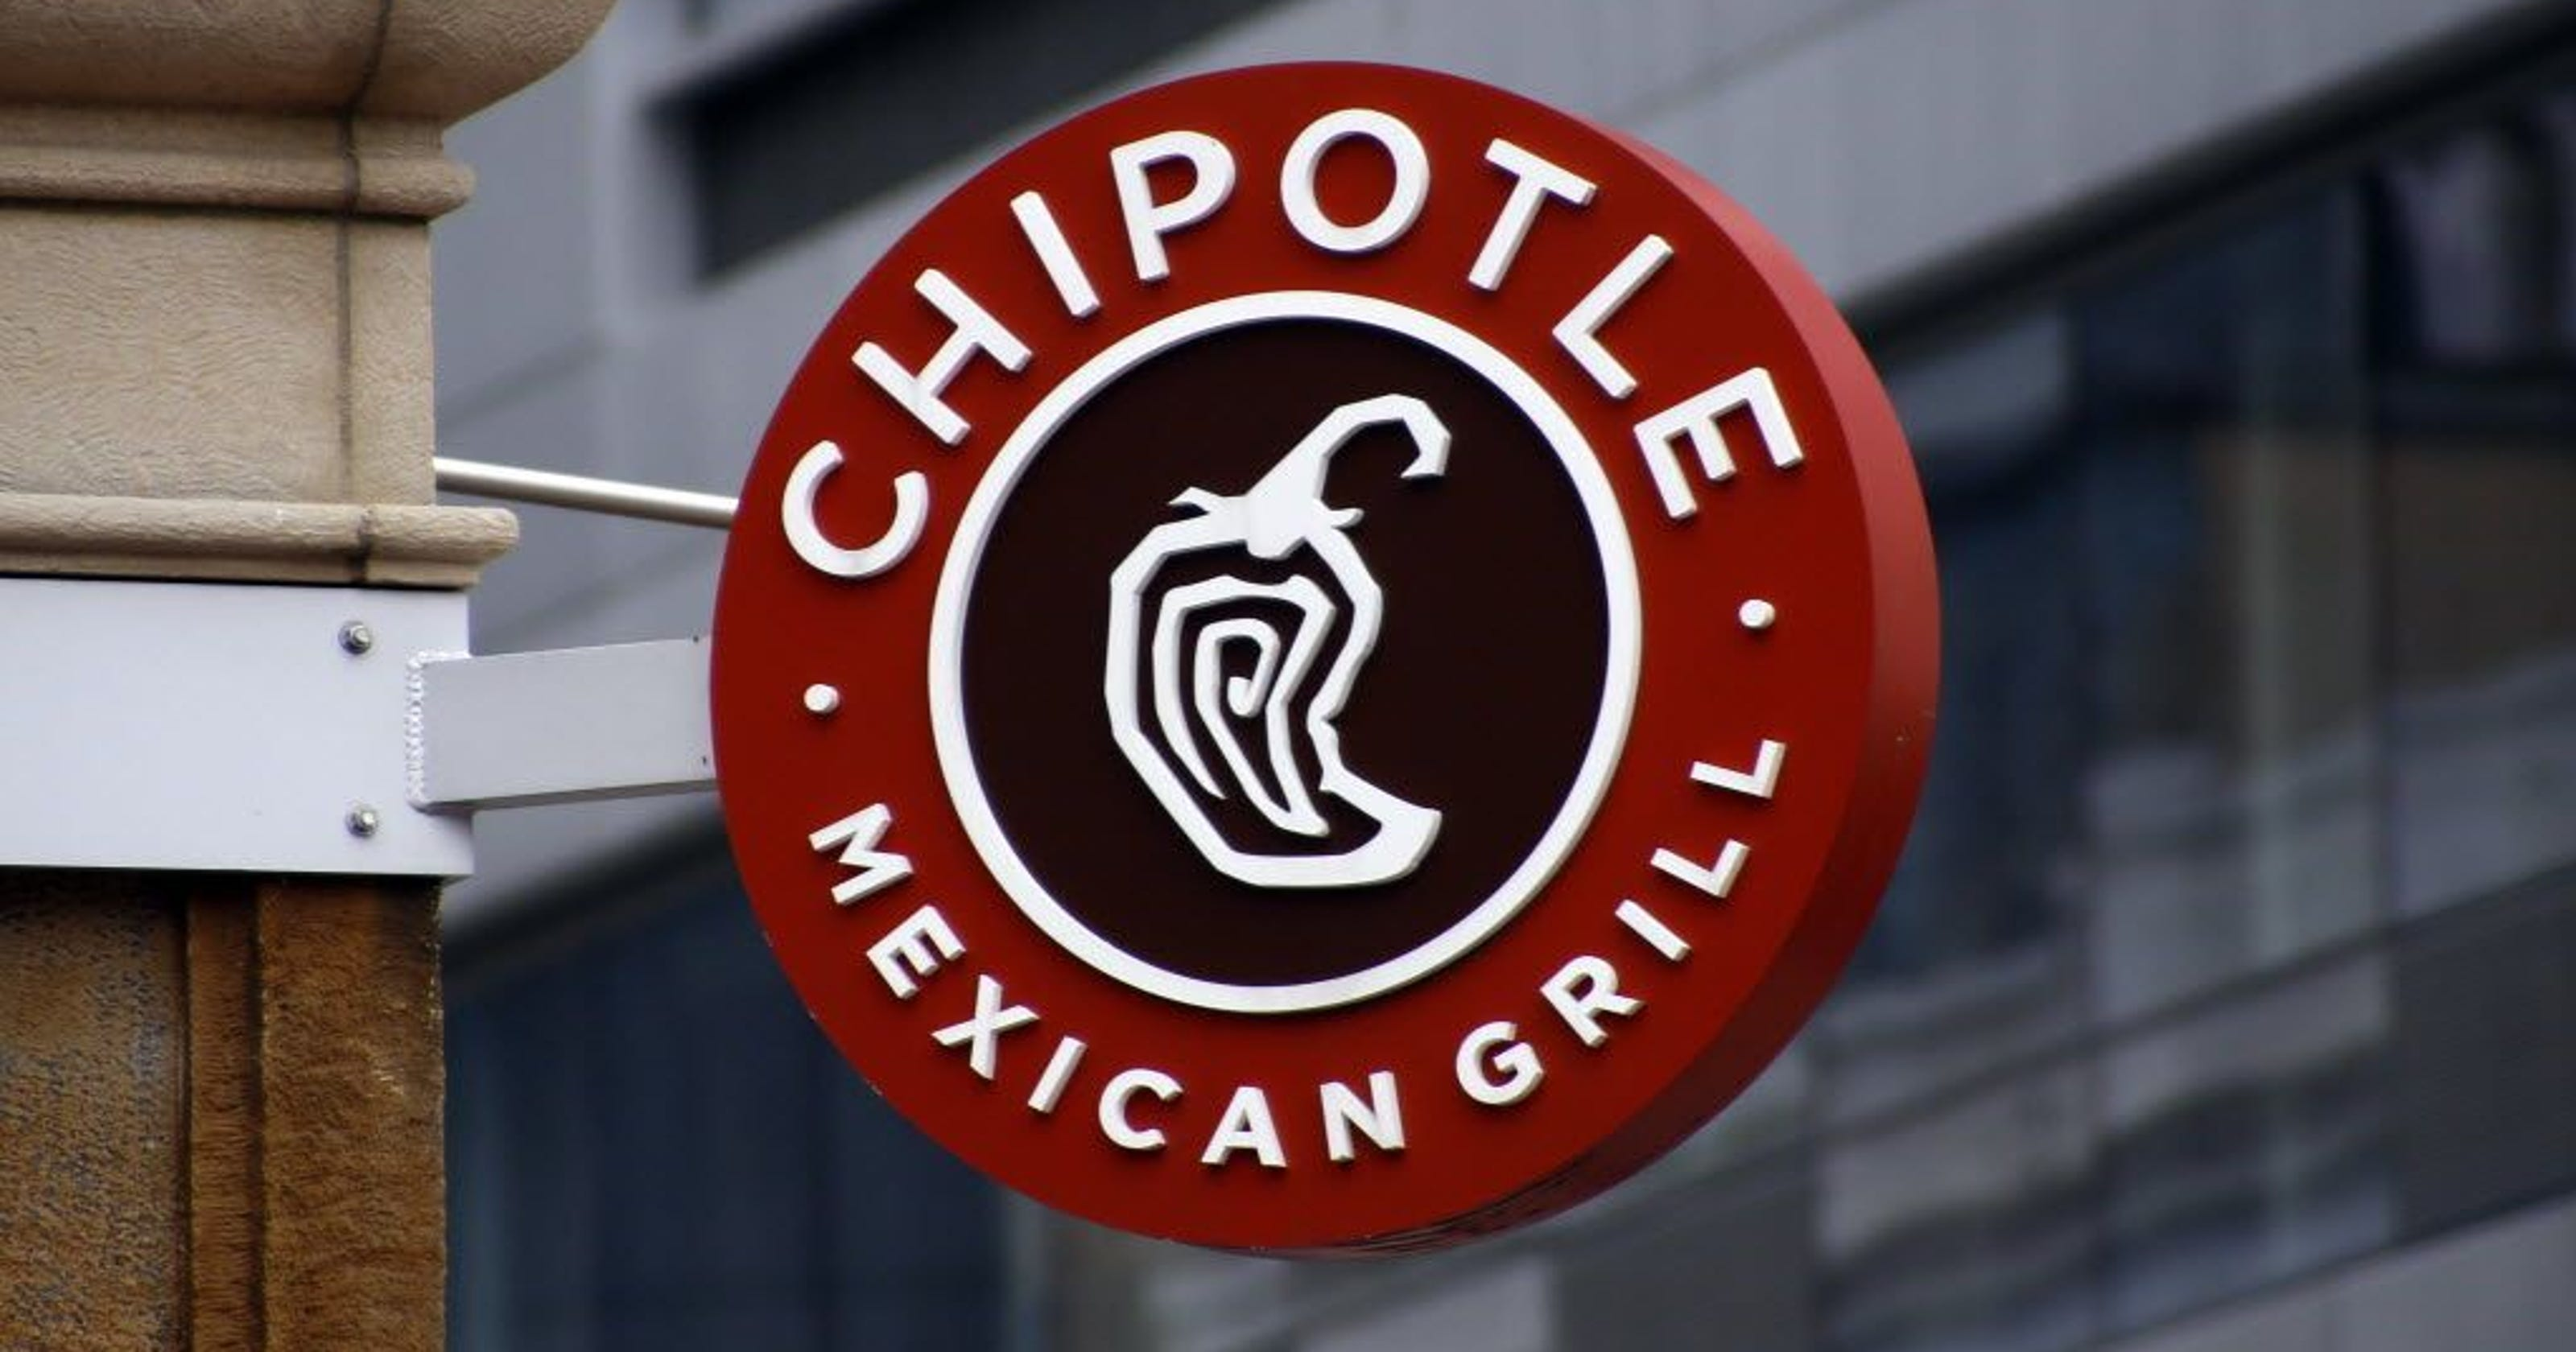 Chipotle expands Westchester footprint with new Greenburgh